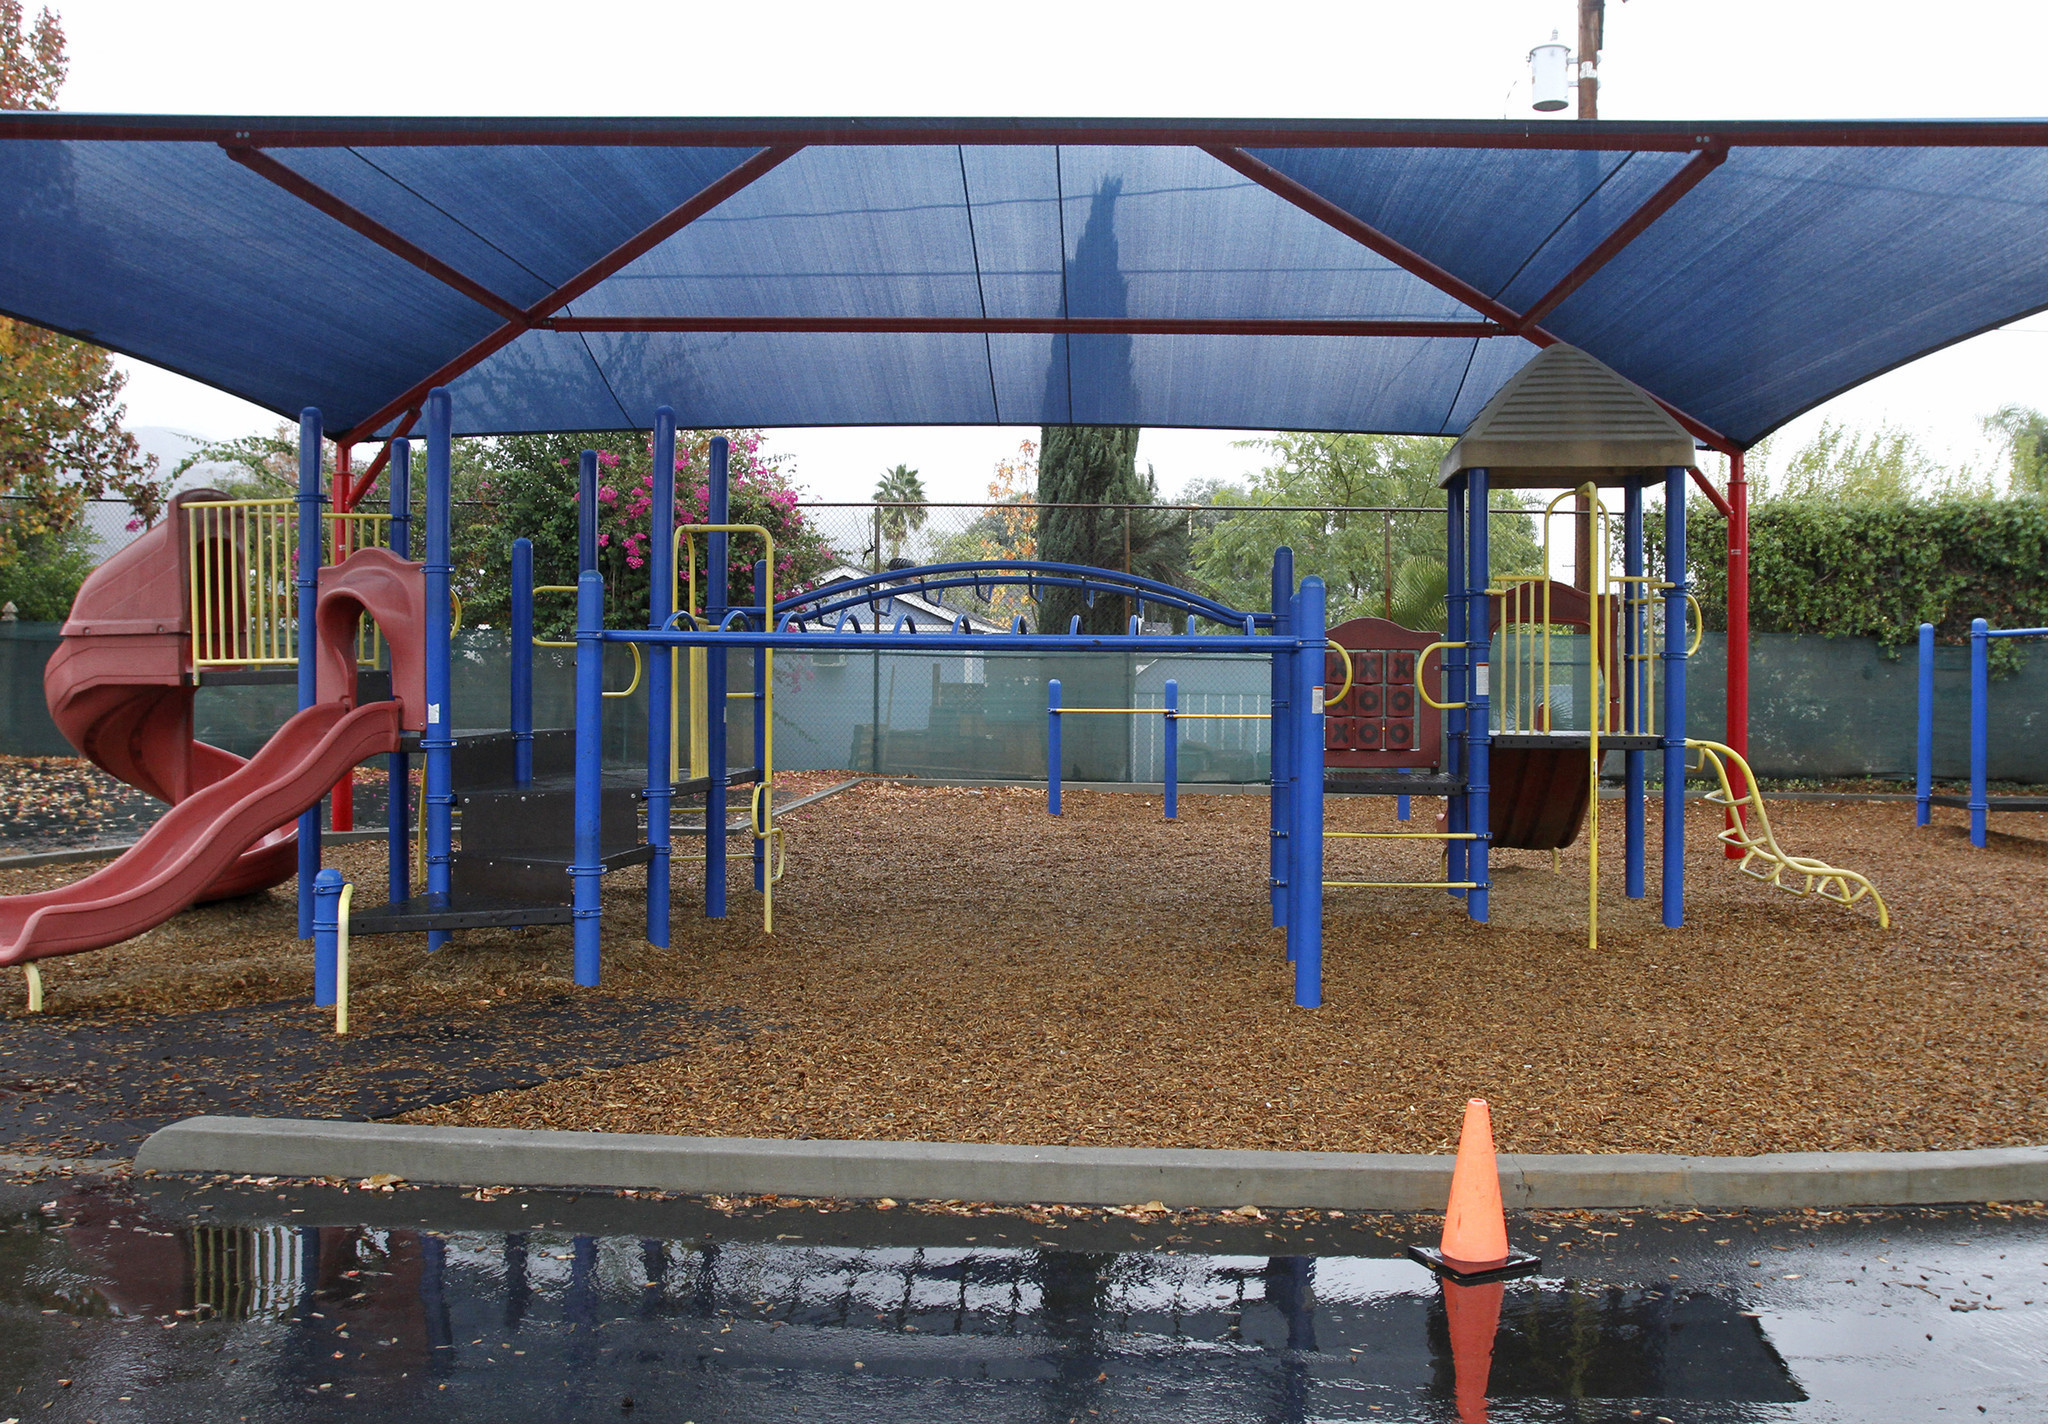 Wood chips at playground removed after they go through